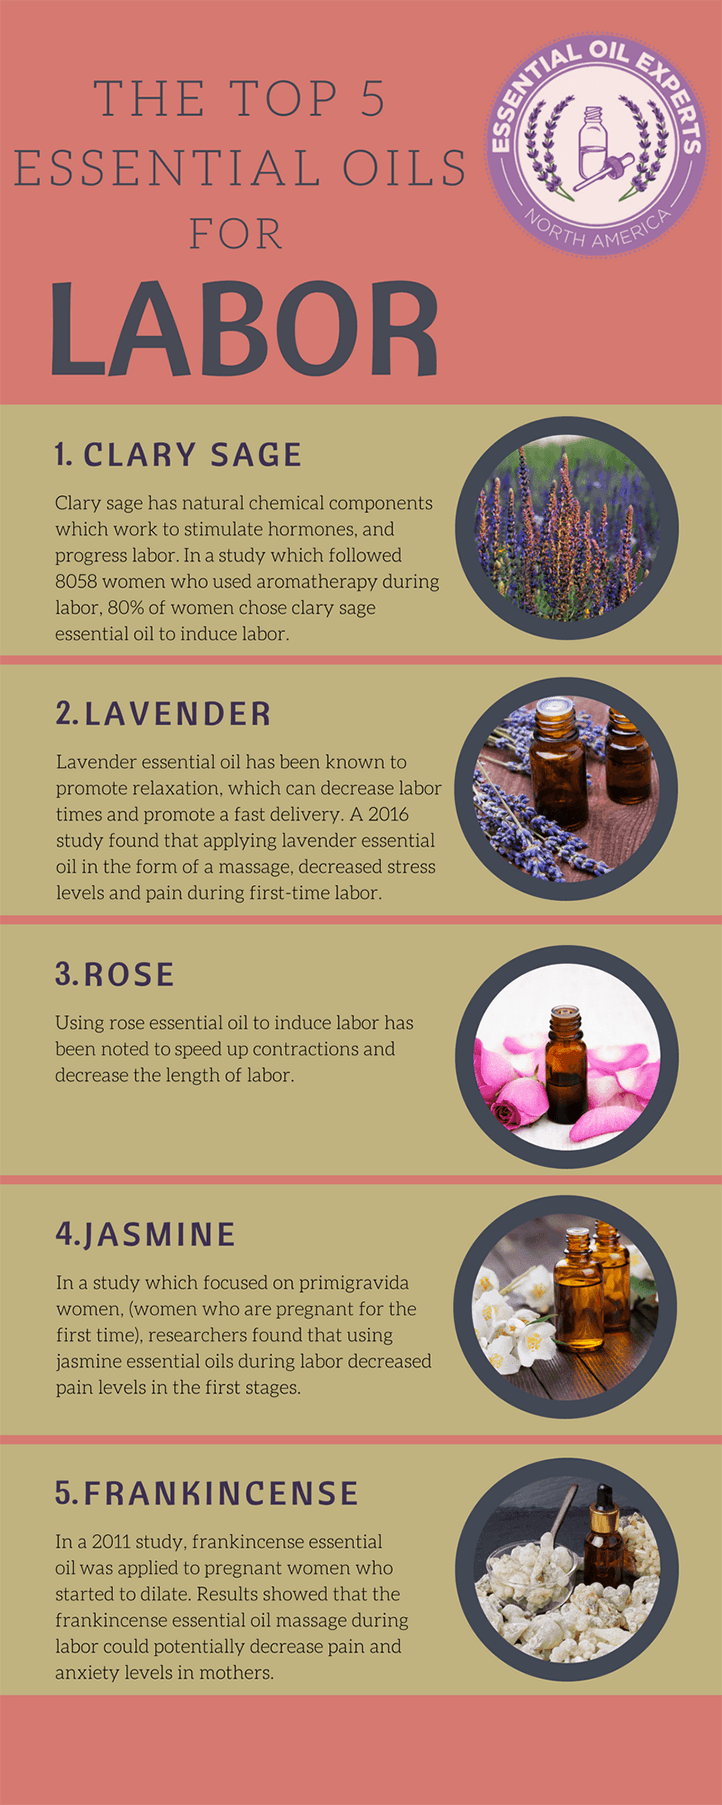 Top 5 Best Essential Oils for Labor | EssentialOilExperts.com